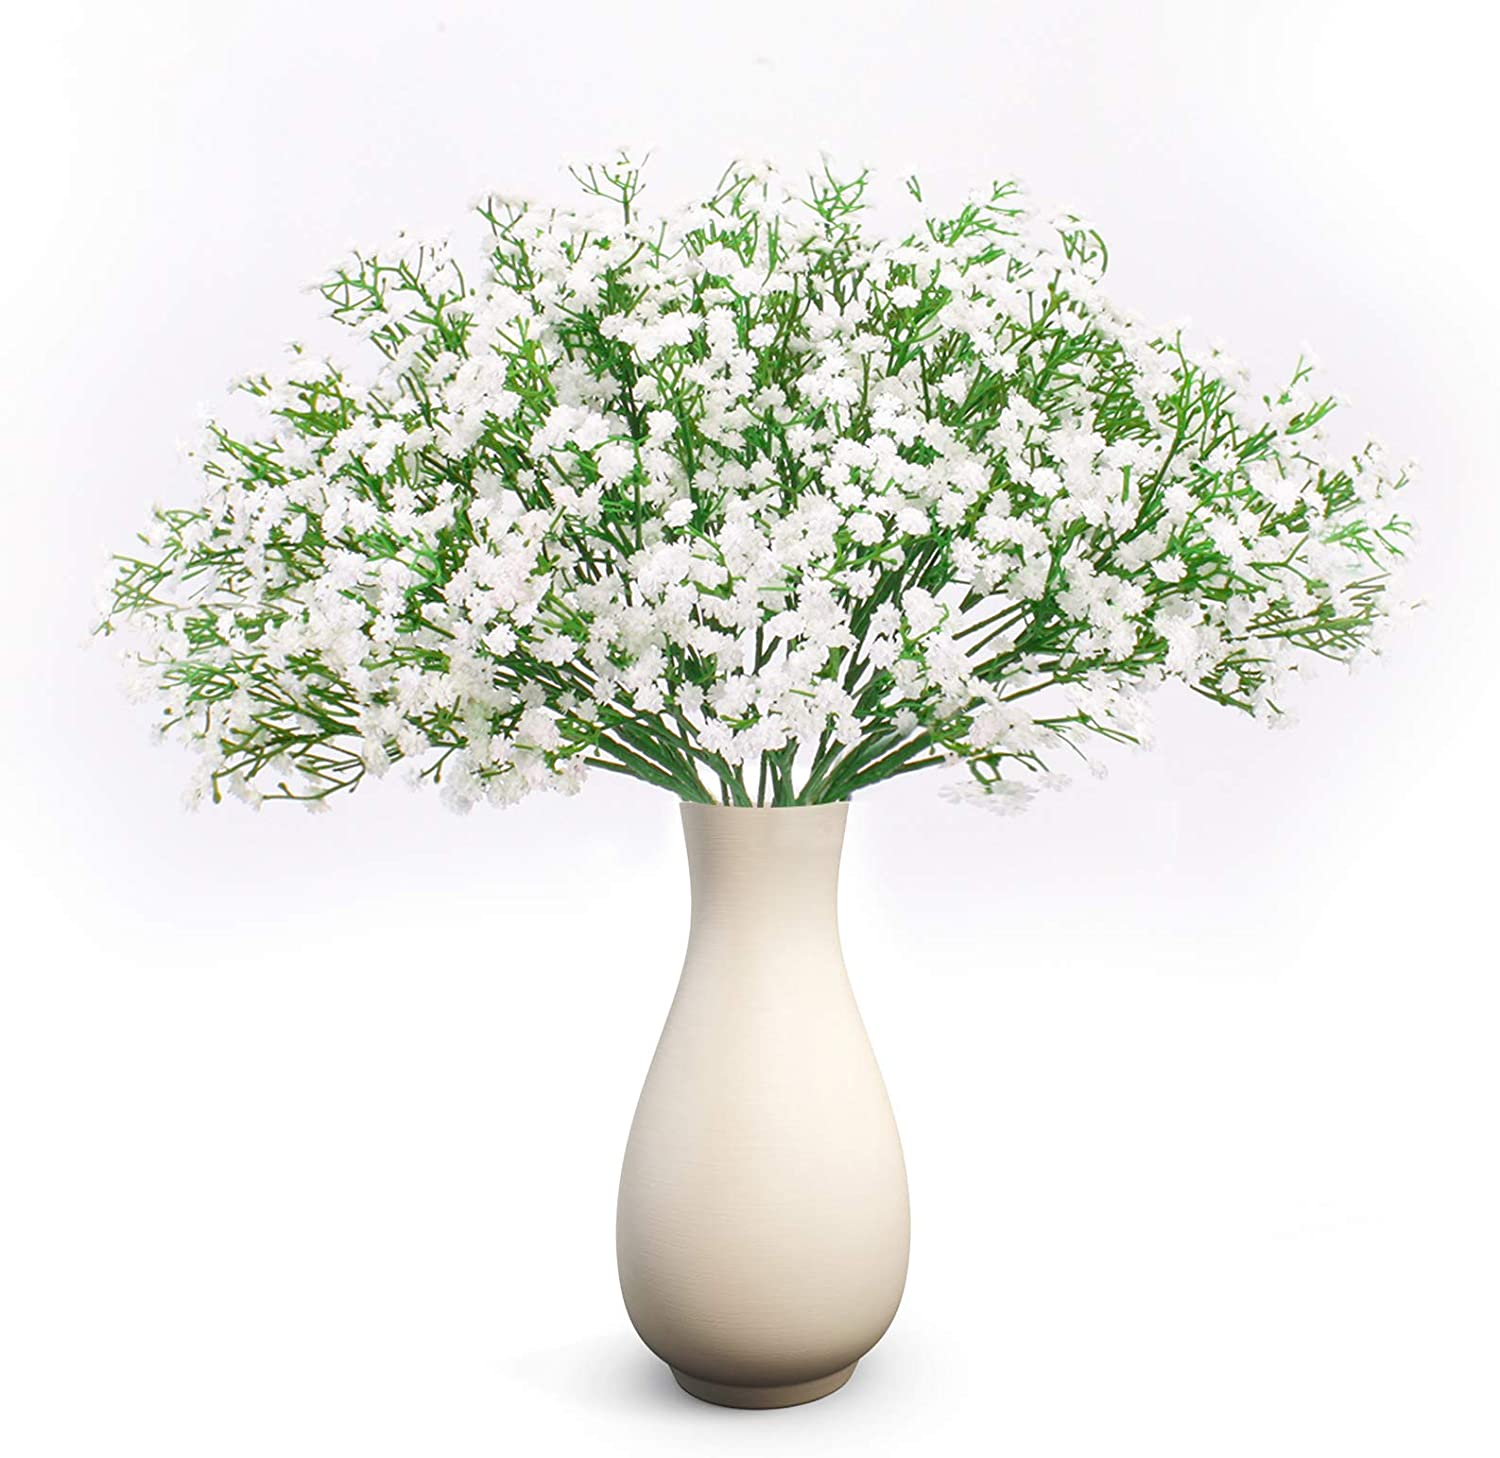 "Hantajanss 24 pcs Baby Breath Gypsophila Artificial Flowers Bouquets Fake Real Touch Flowers for Wedding Party Decoration DIY Home Decor 21"" White"